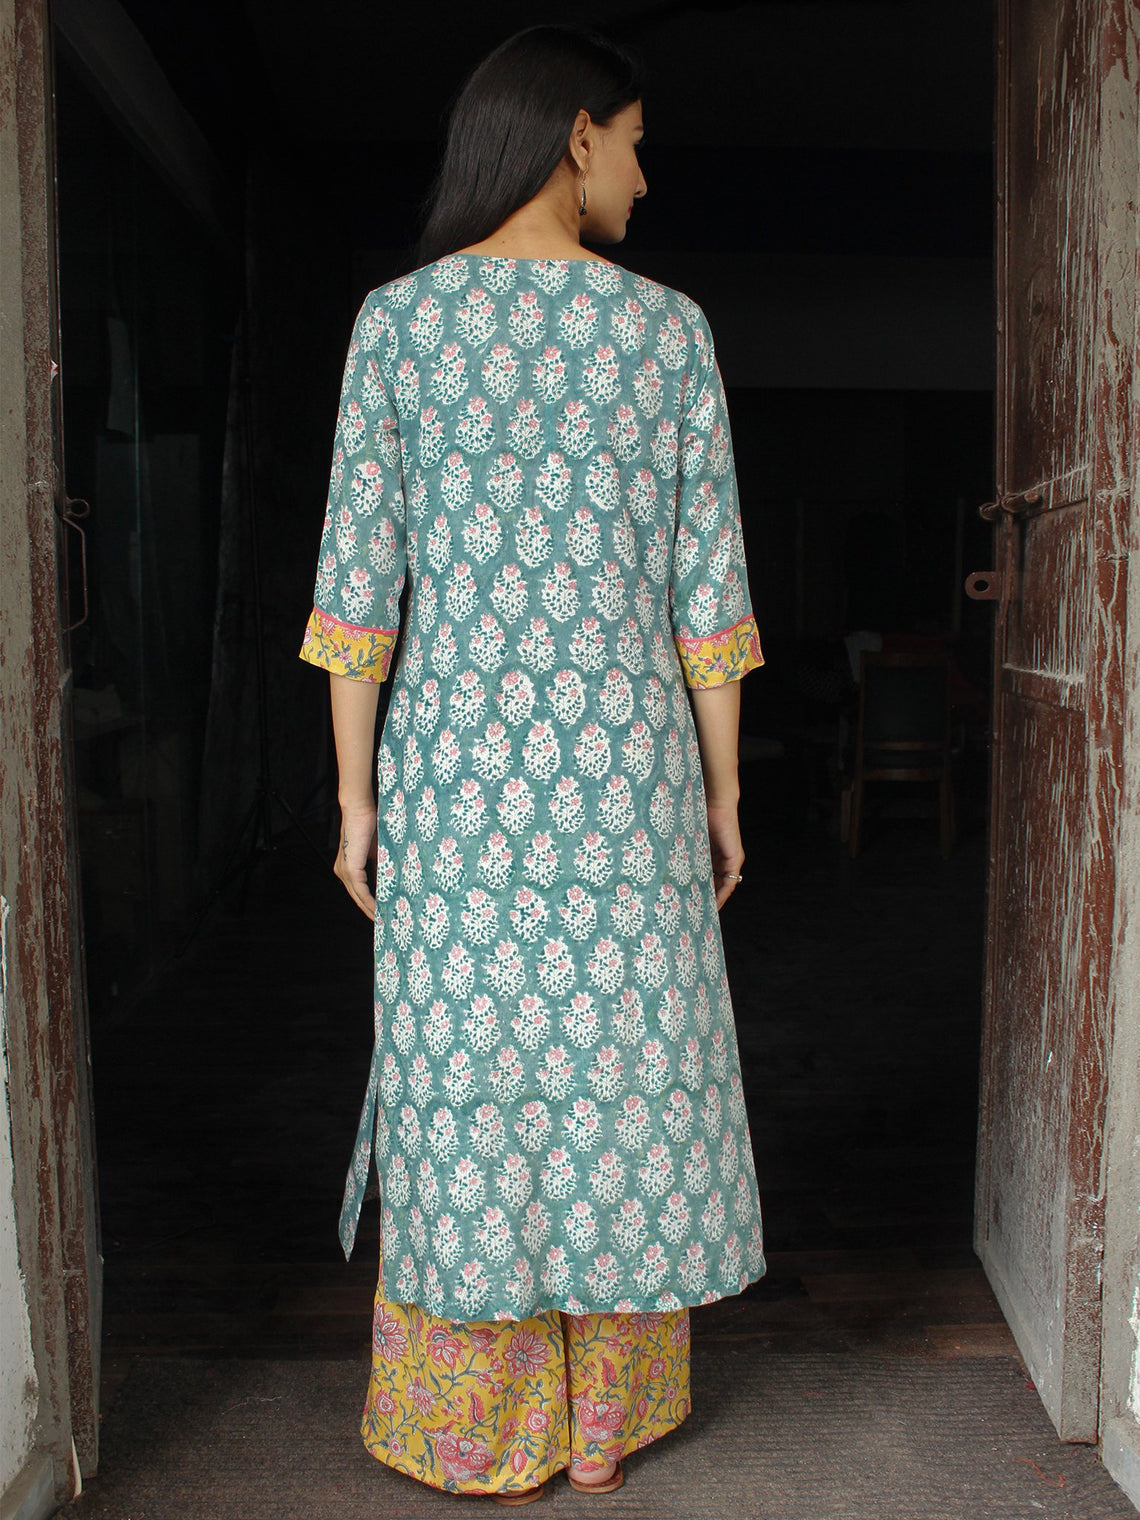 PASTEL BLOOM - Hand Block Printed Cotton Long Dress (Set of 2)  - D333F1845